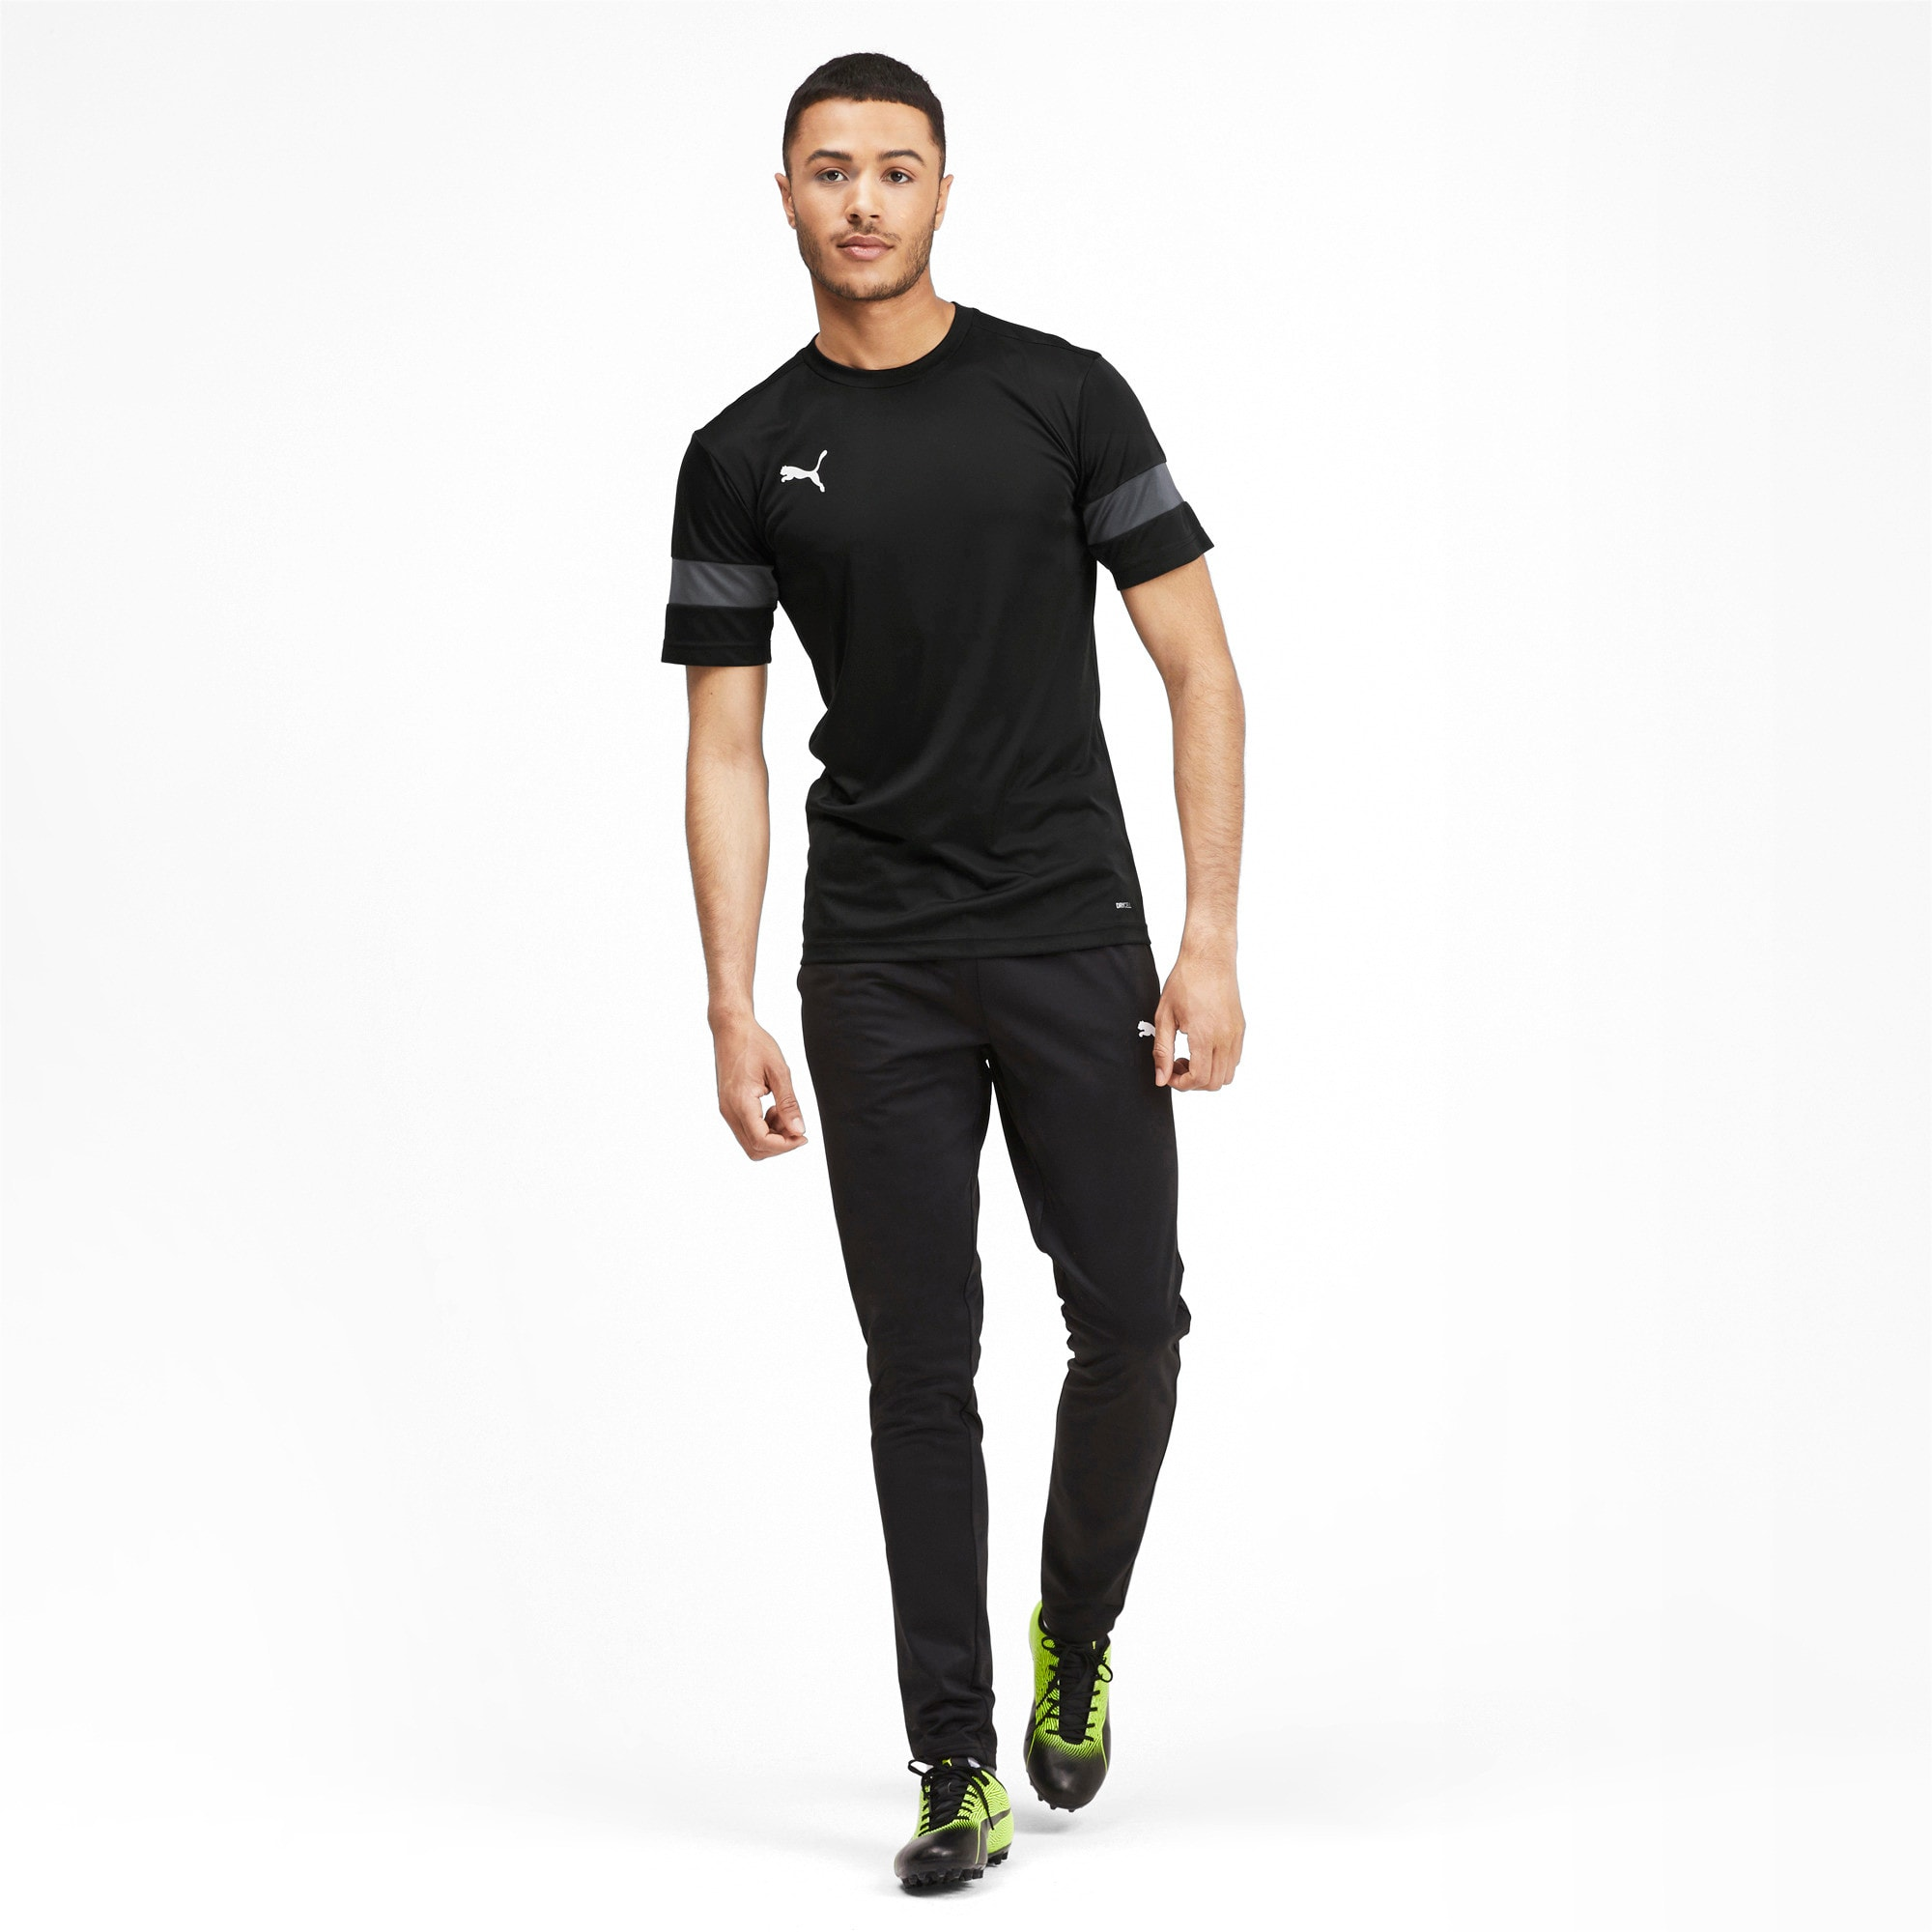 Thumbnail 3 of Herren Trainingsshirt, Puma Black-Asphalt, medium